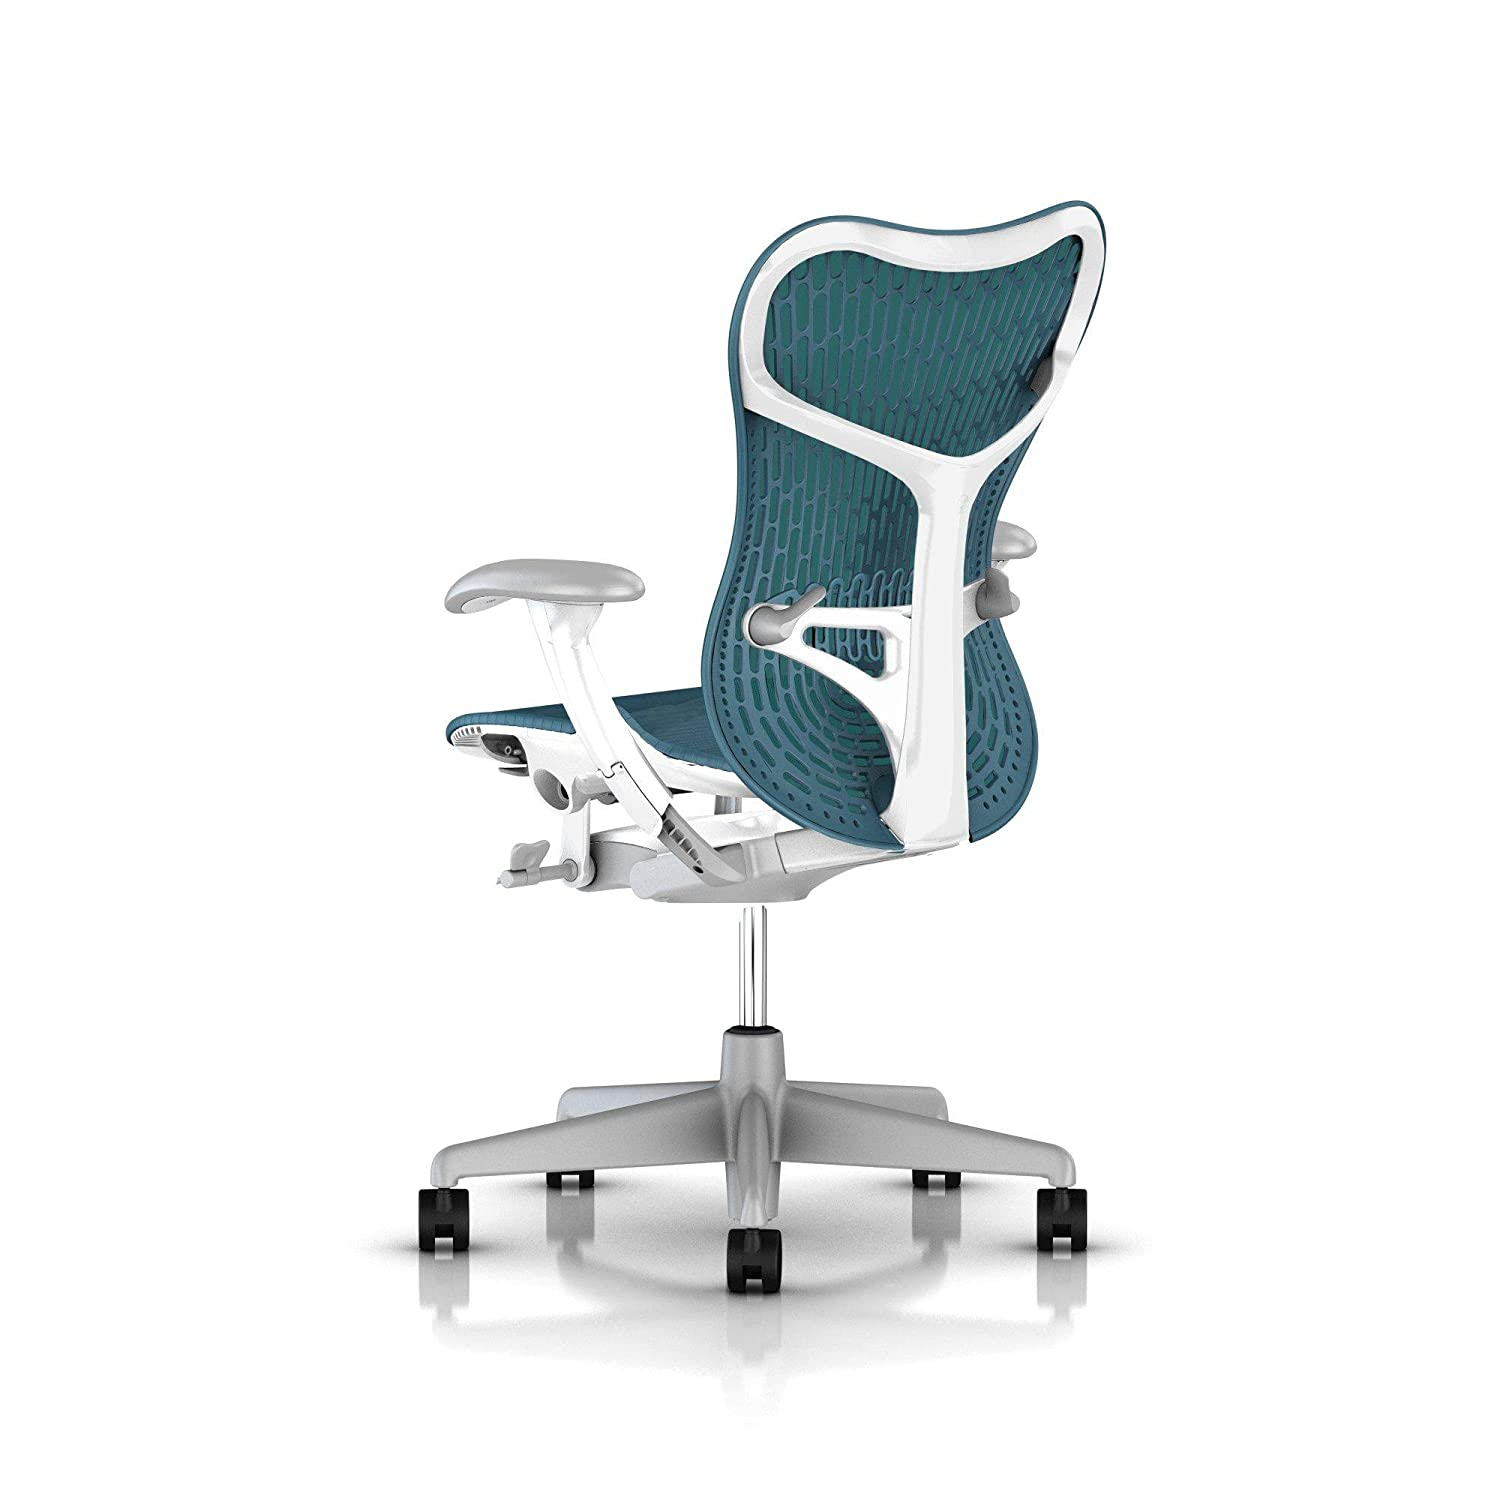 Herman miller chair - Amazon Com Herman Miller Mirra 2 Office Chair Tilt Limiter Adjustable Arms And Seat Dark Turquoise Butterfly Suspension Latitude Back With Studio White